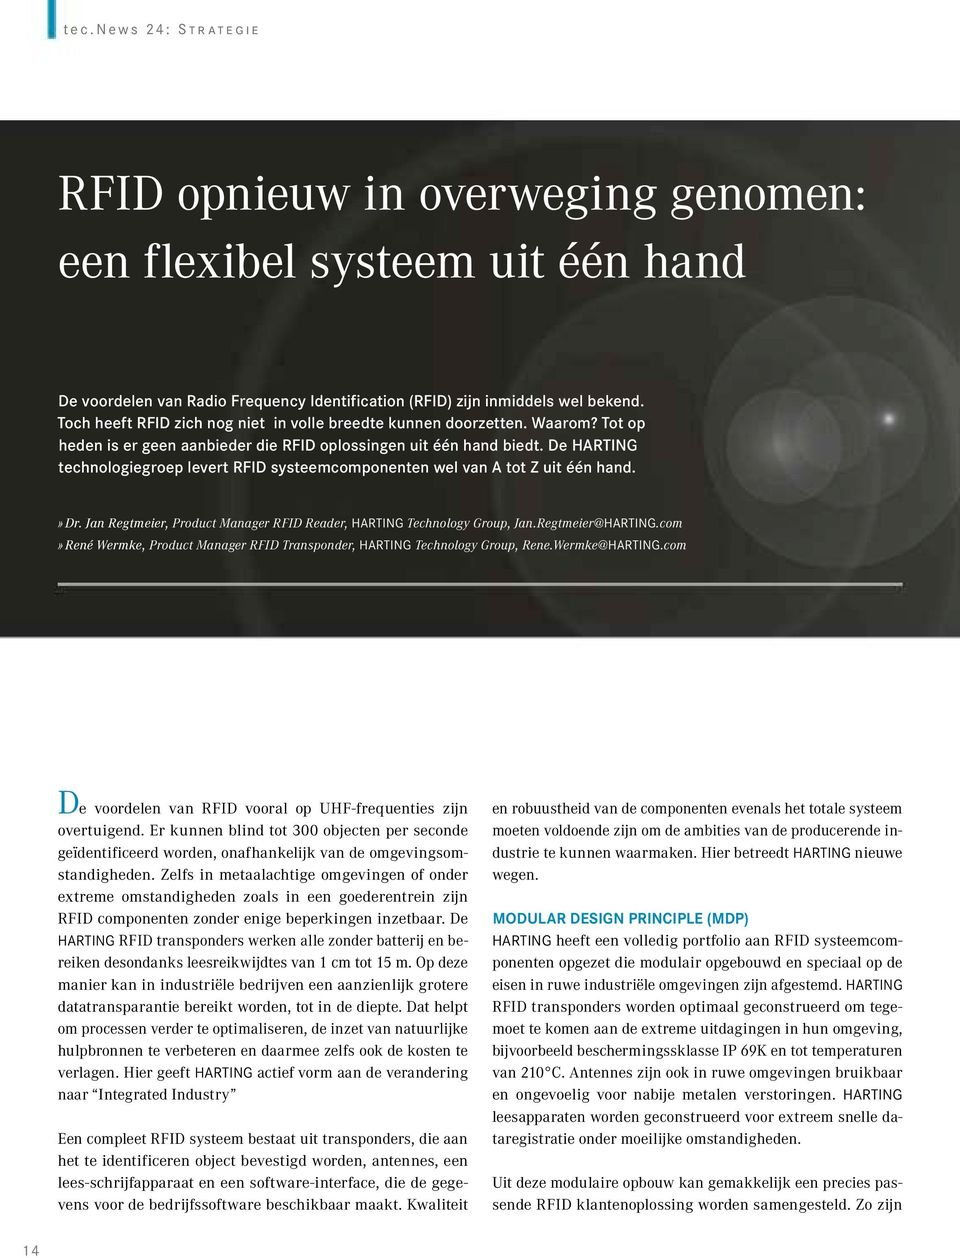 De HARTING technologiegroep levert RFID systeemcomponenten wel van A tot Z uit één hand.» Dr. Jan Regtmeier, Product Manager RFID Reader, HARTING Technology Group, Jan.Regtmeier@HARTING.